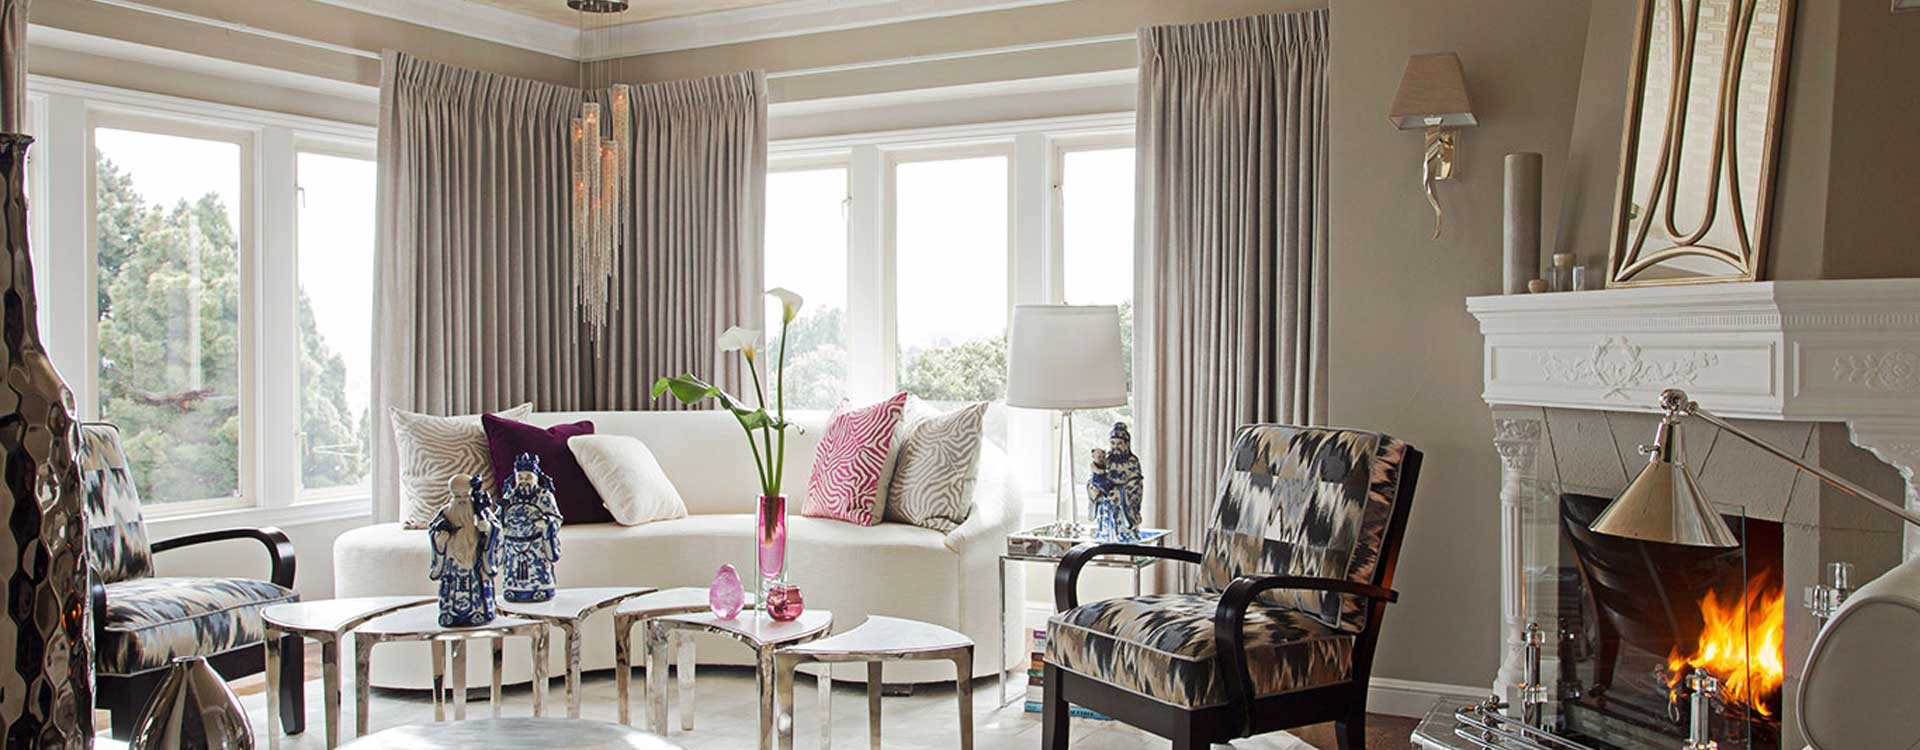 why regal drapes beautiful pinch pleat draperies in less time and for less money often 20 60 less than other custom workrooms